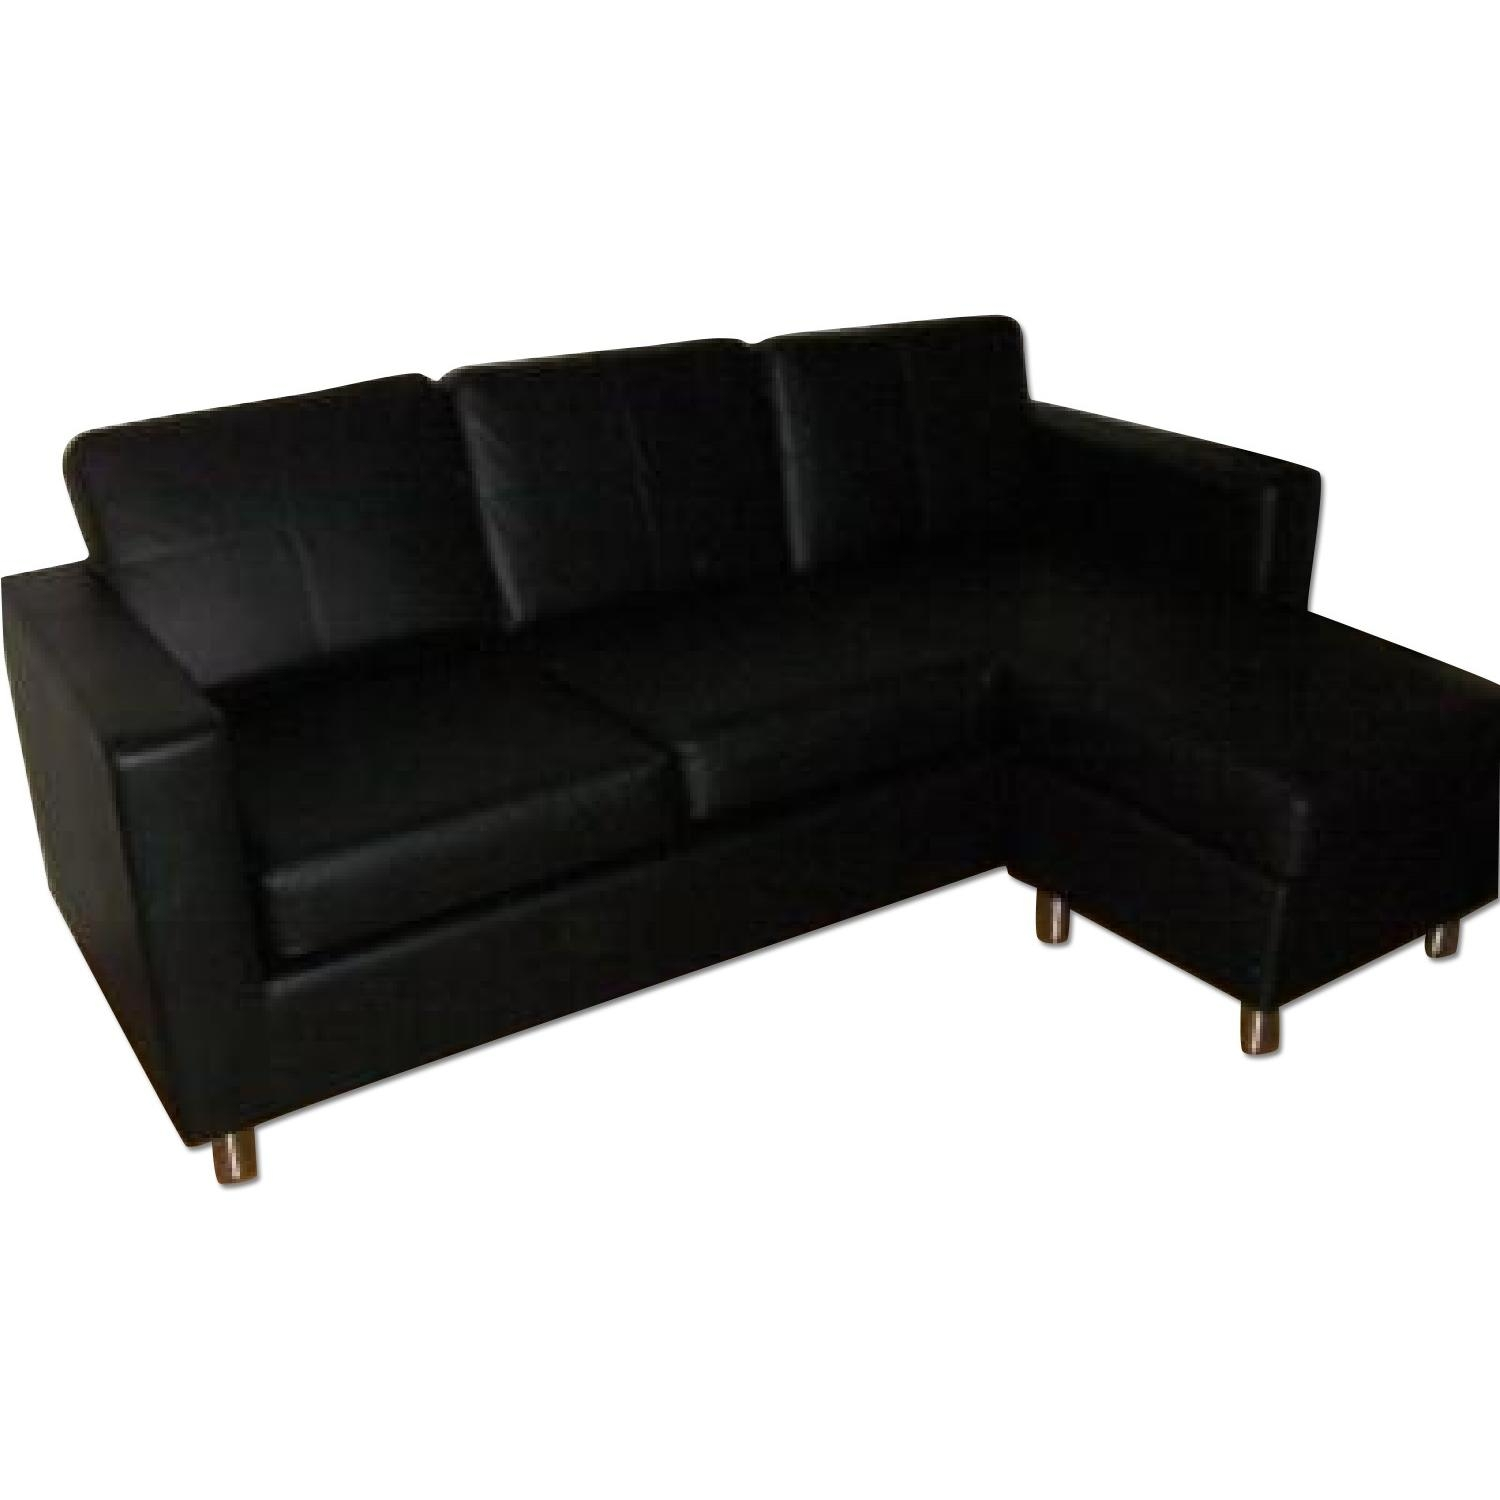 Cheap Black Sectional Sofa Tourdecarroll Intended For Black Sectional Sofa For Cheap (Image 7 of 15)